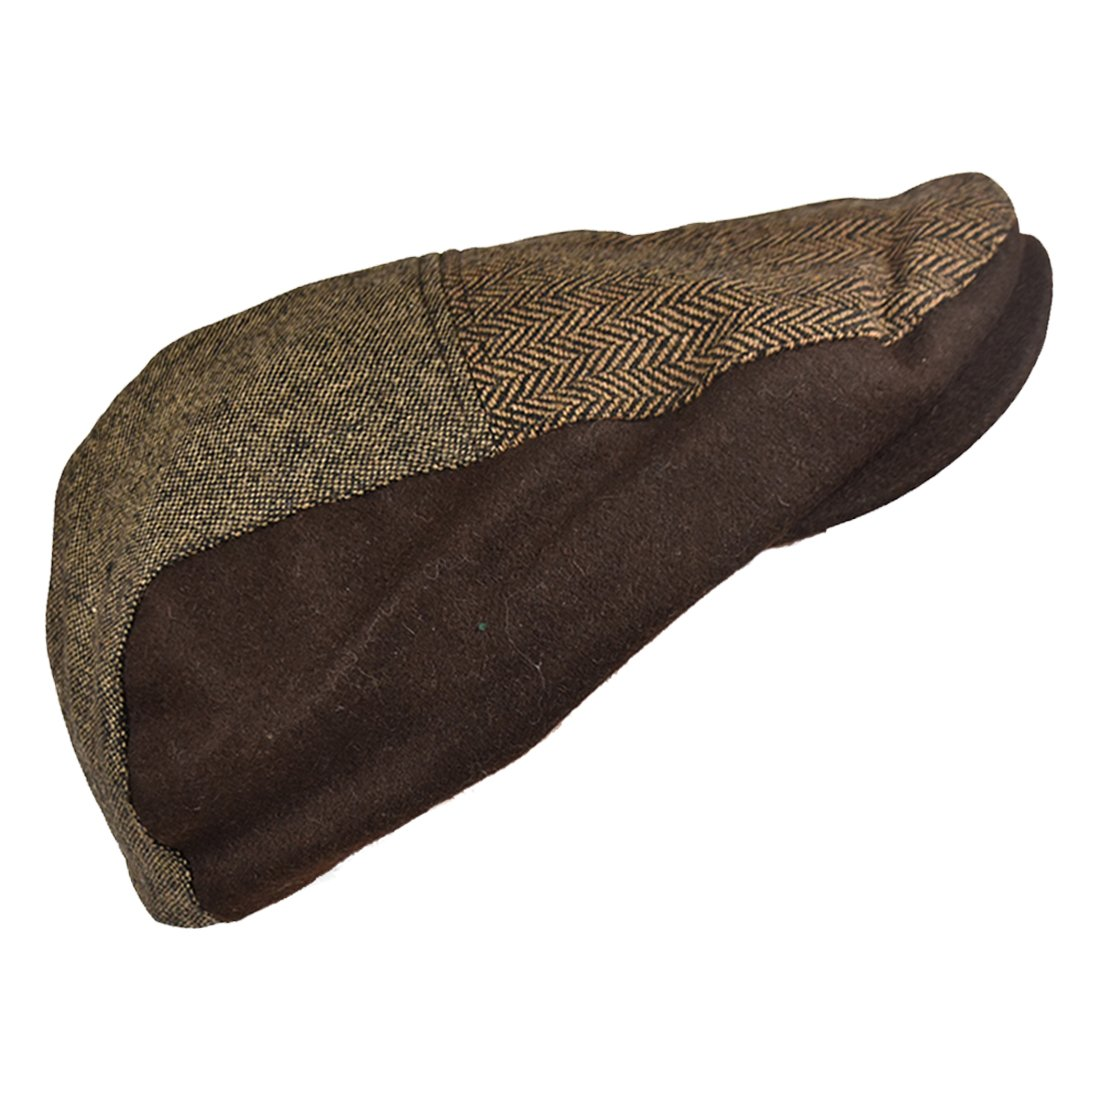 Landana Headscarves Ivy Scally Cap Patchwork Tweed Driver Hat LDHTML45BR